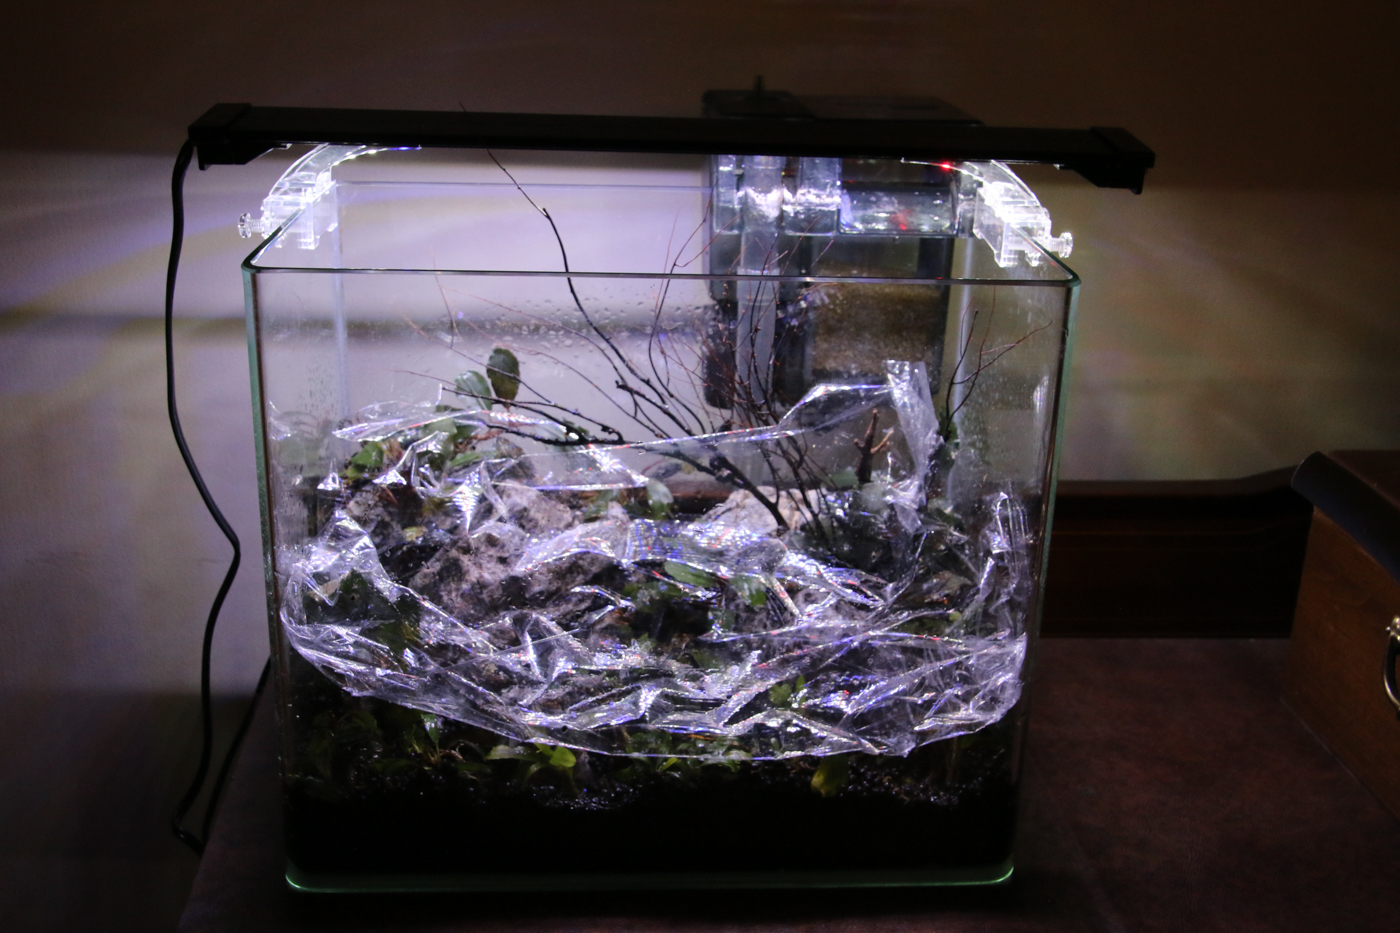 On these tiny tanks, simply lay a sheet of plastic wrap over the entire scape.